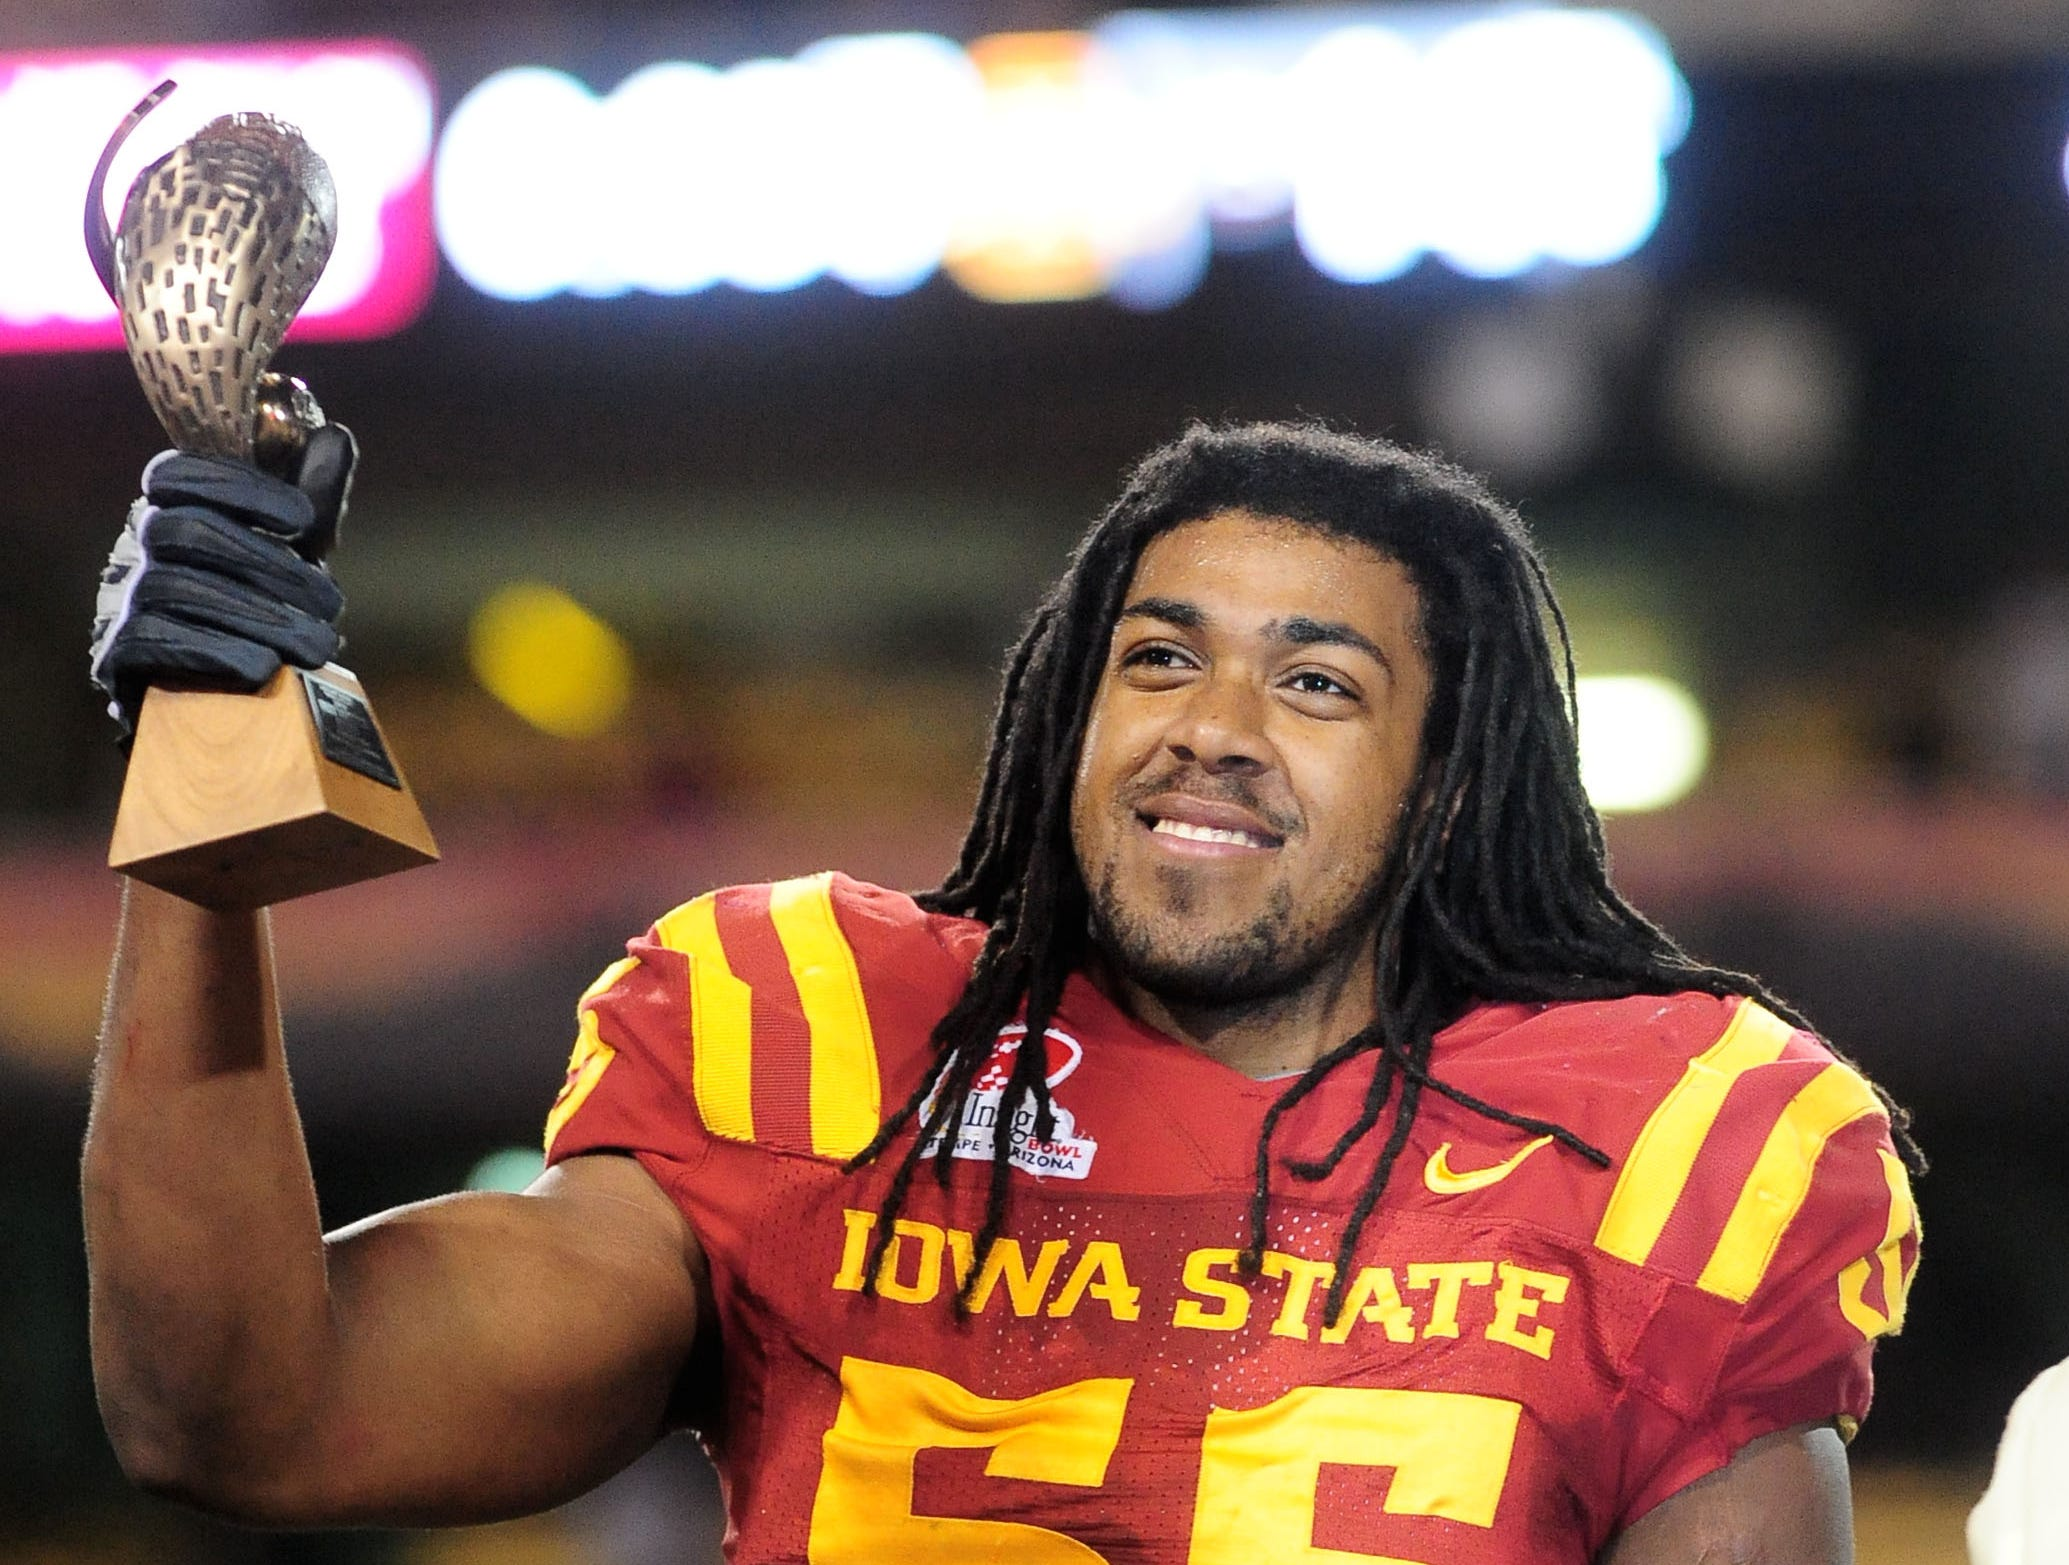 Dec 31, 2009; Tempe, AZ, USA; Iowa State Cyclones defensive end Christopher Lyle celebrates with the defensive player of the game trophy following the game against the Minnesota Golden Gophers in the 2009 Insight Bowl at Sun Devil Stadium. Iowa State defeated Minnesota 14-13. Mandatory Credit: Mark J. Rebilas-USA TODAY Sports